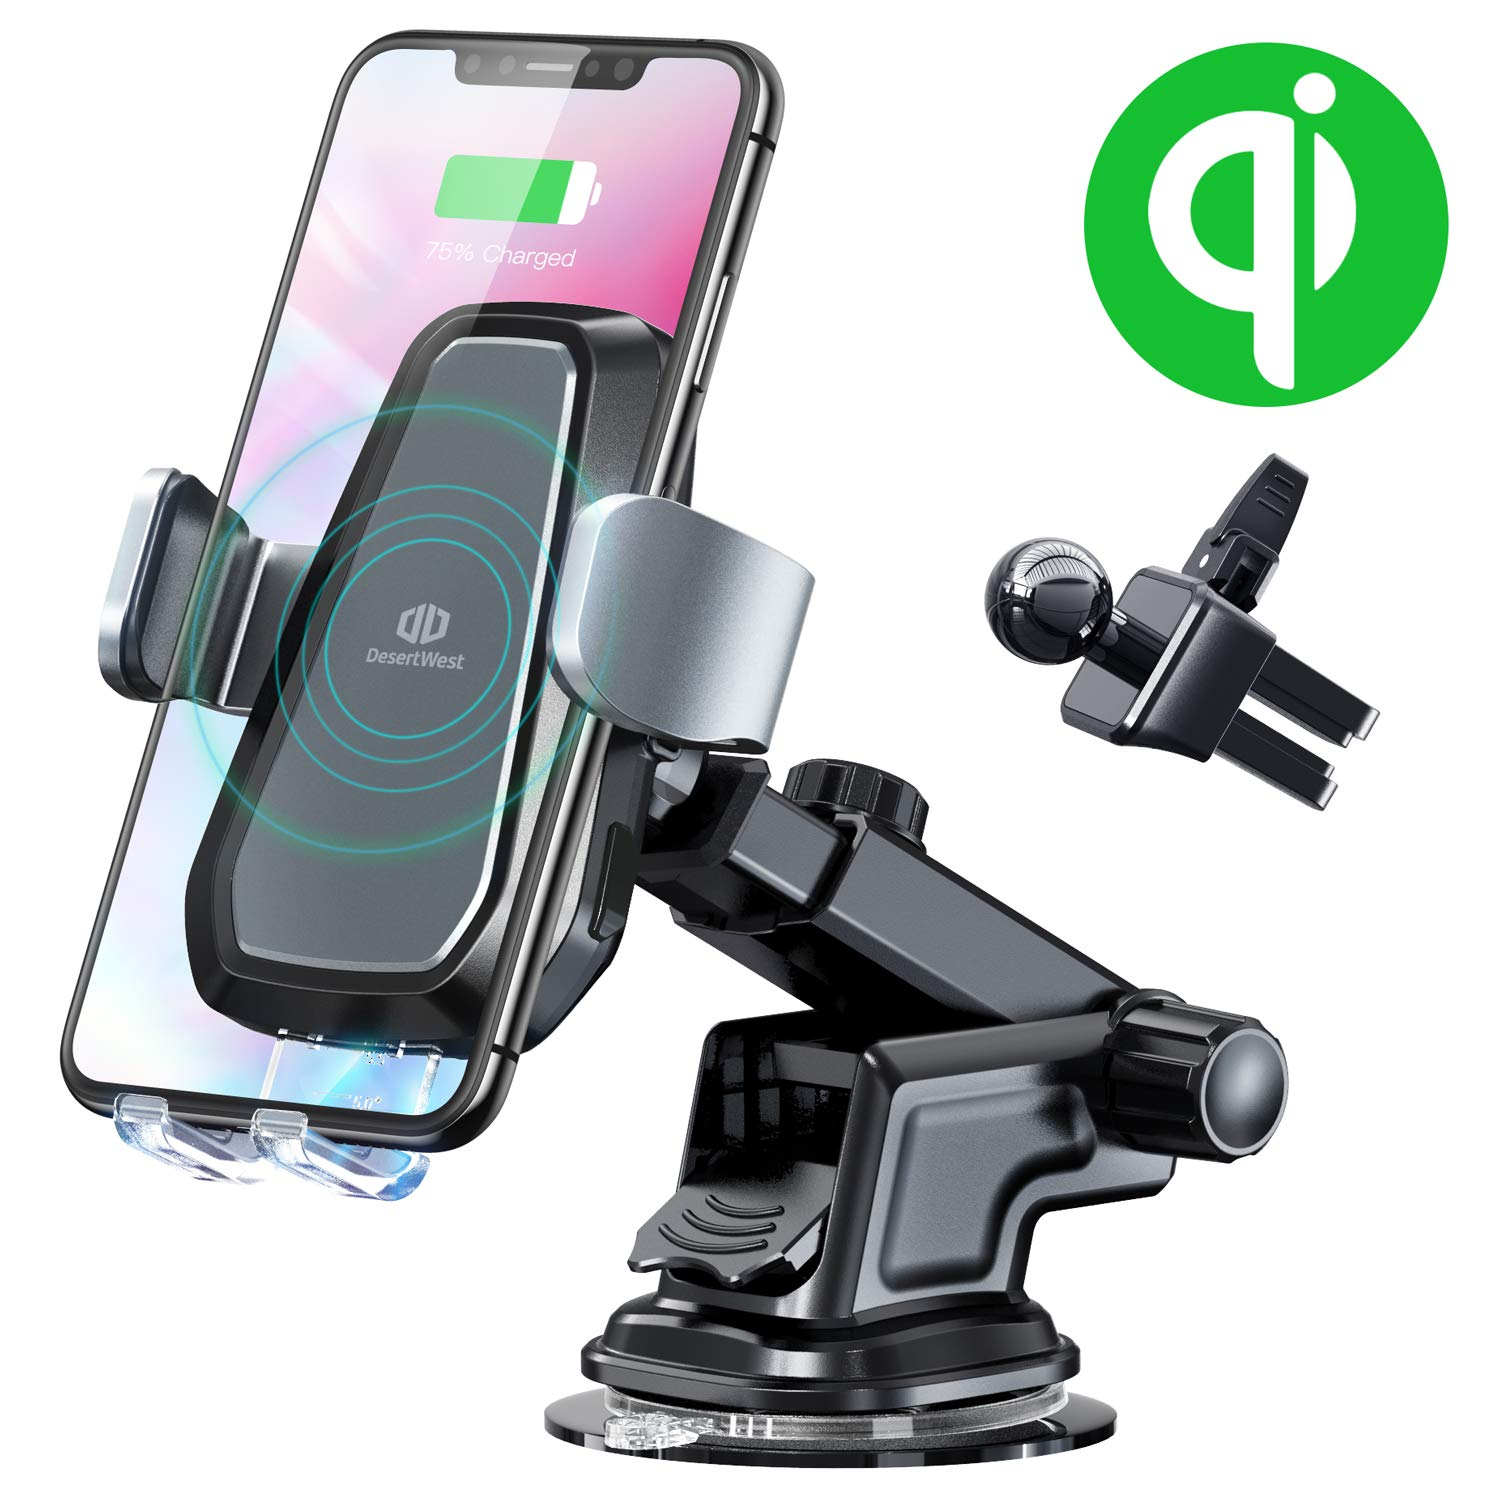 DesertWest Wireless Car Charger Phone Mount for Samsung Galaxy Note 10+, Auto-Clamp Fast Charger Qi-Certified Cell Phone Air Vent Holder & Dashboard Mount for QI Smartphones by DesertWest